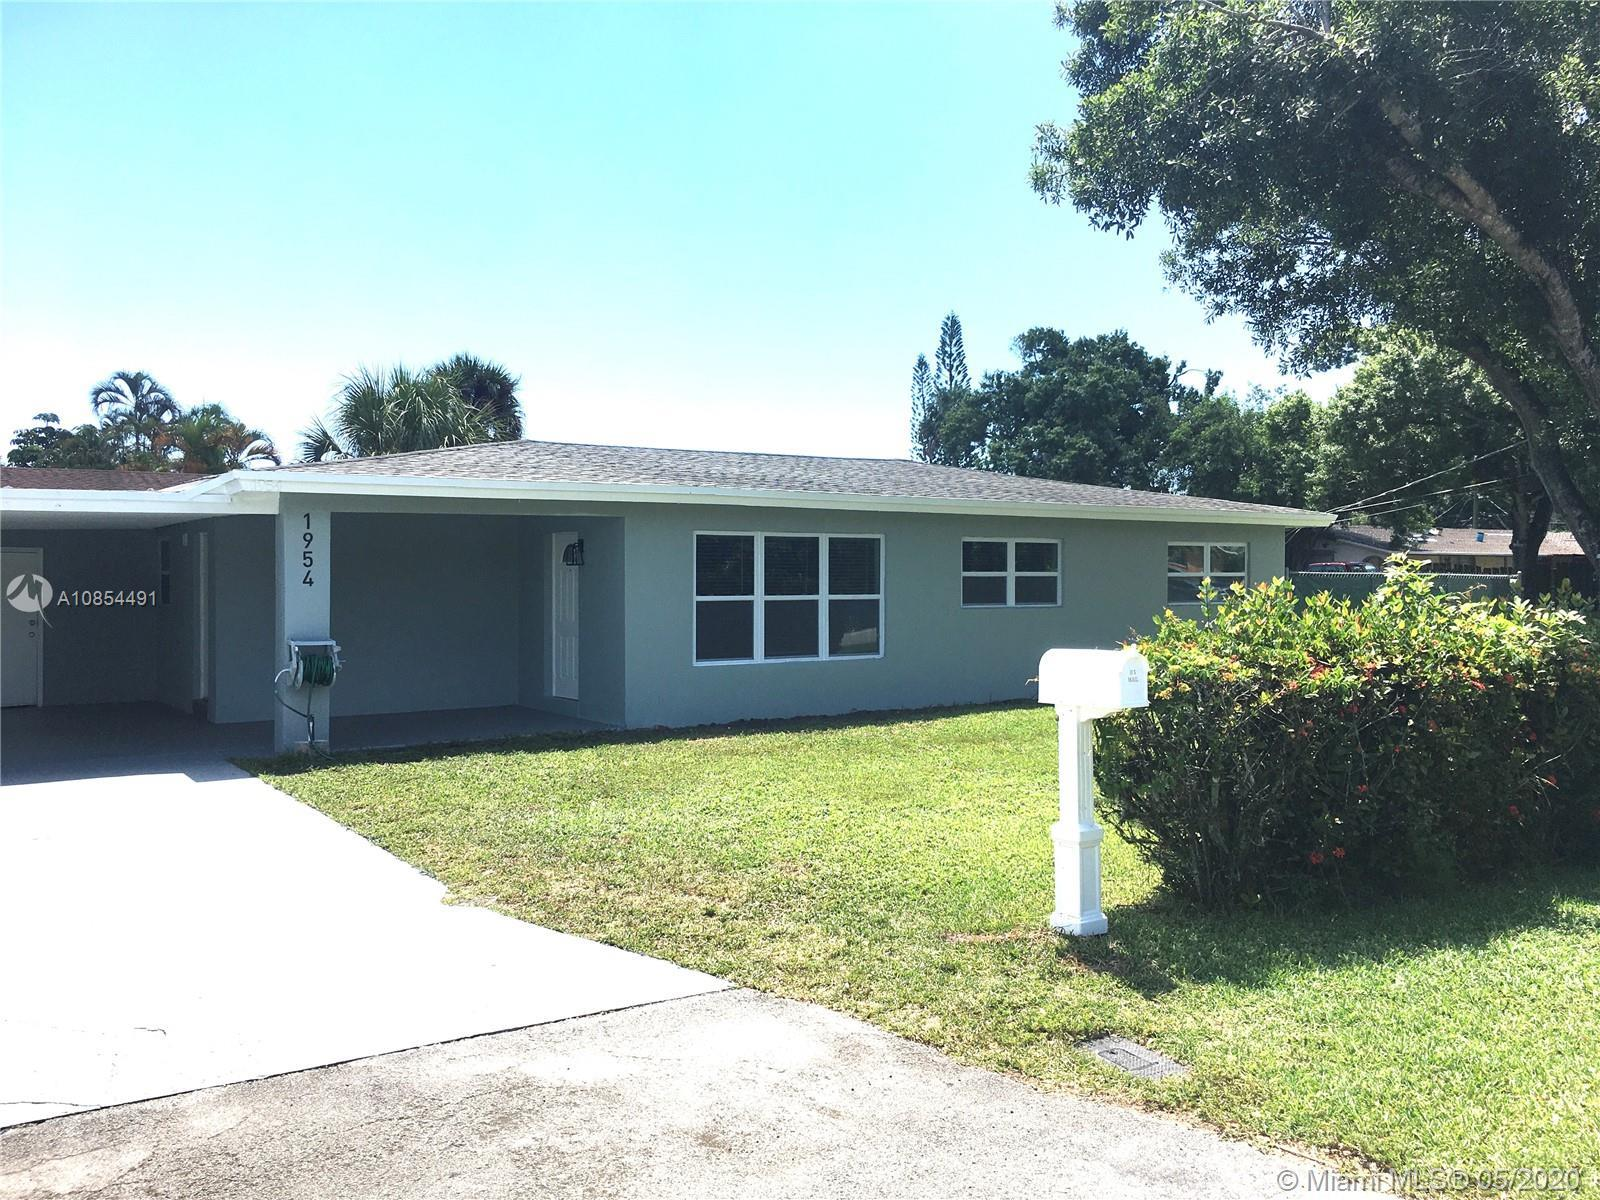 Completely renovated and upgraded 3/2 single family home in the Riverland area! Large corner lot, br